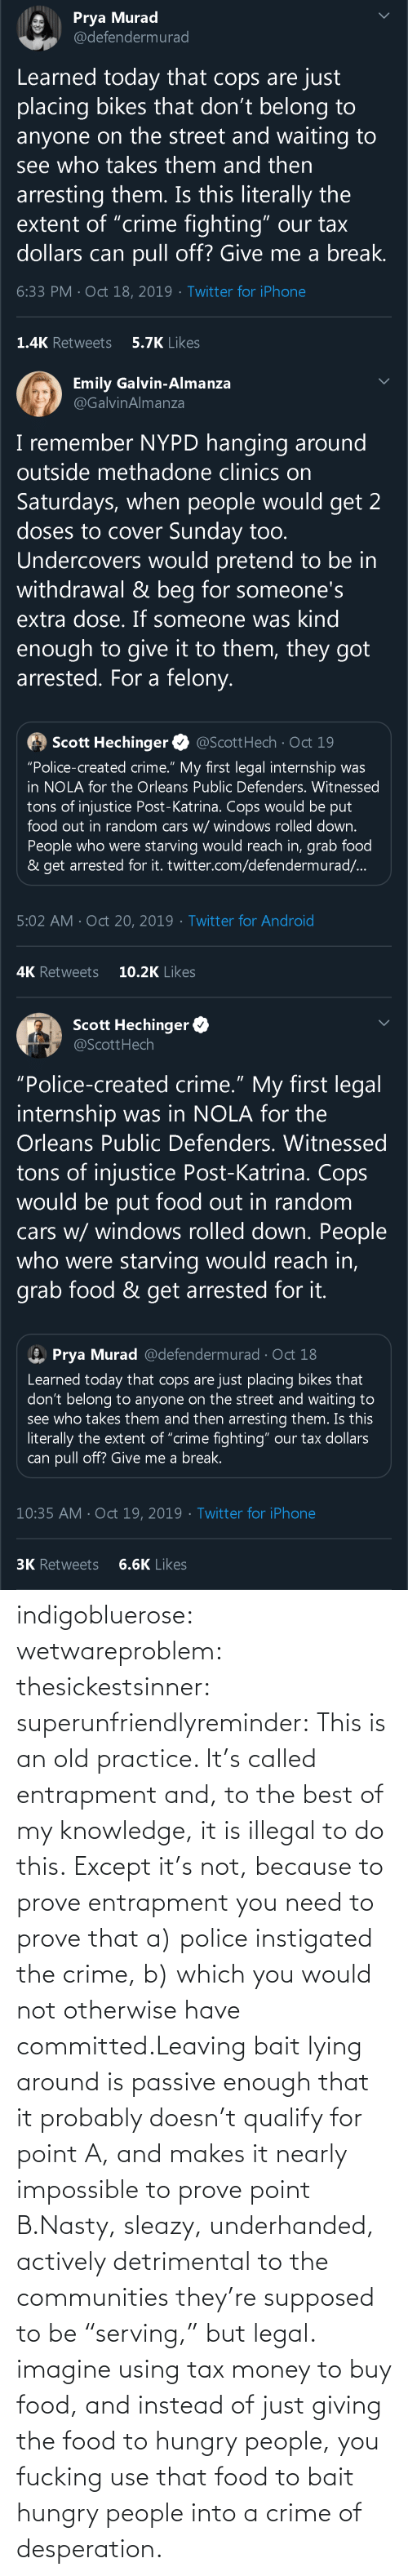 "Police: indigobluerose: wetwareproblem:  thesickestsinner:  superunfriendlyreminder:   This is an old practice.    It's called entrapment and, to the best of my knowledge, it is illegal to do this.  Except it's not, because to prove entrapment you need to prove that a) police instigated the crime, b) which you would not otherwise have committed.Leaving bait lying around is passive enough that it probably doesn't qualify for point A, and makes it nearly impossible to prove point B.Nasty, sleazy, underhanded, actively detrimental to the communities they're supposed to be ""serving,"" but legal.  imagine using tax money to buy food, and instead of just giving the food to hungry people, you fucking use that food to bait hungry people into a crime of desperation."